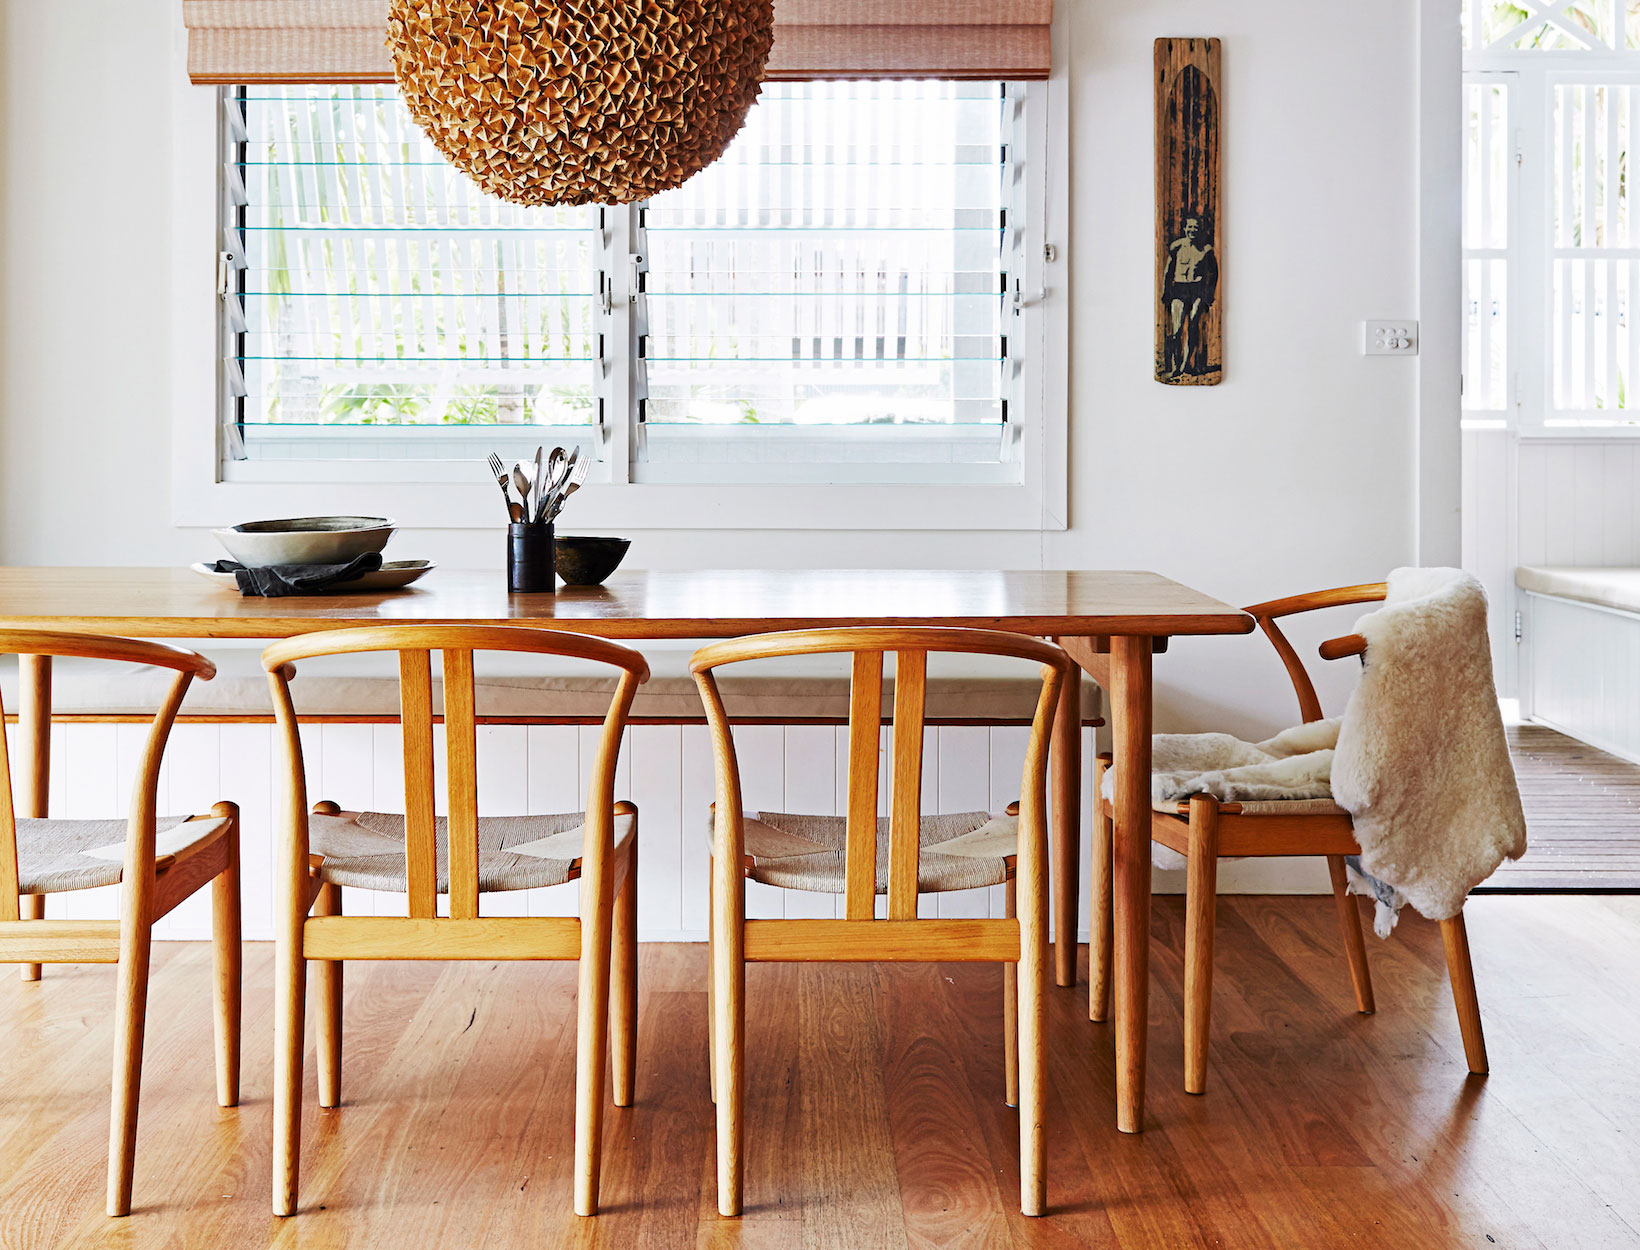 Johnson Round Pedestal Dining Tables Inside Well Liked 8 Design Professionals On Their Favorite Dining Tables (View 15 of 25)